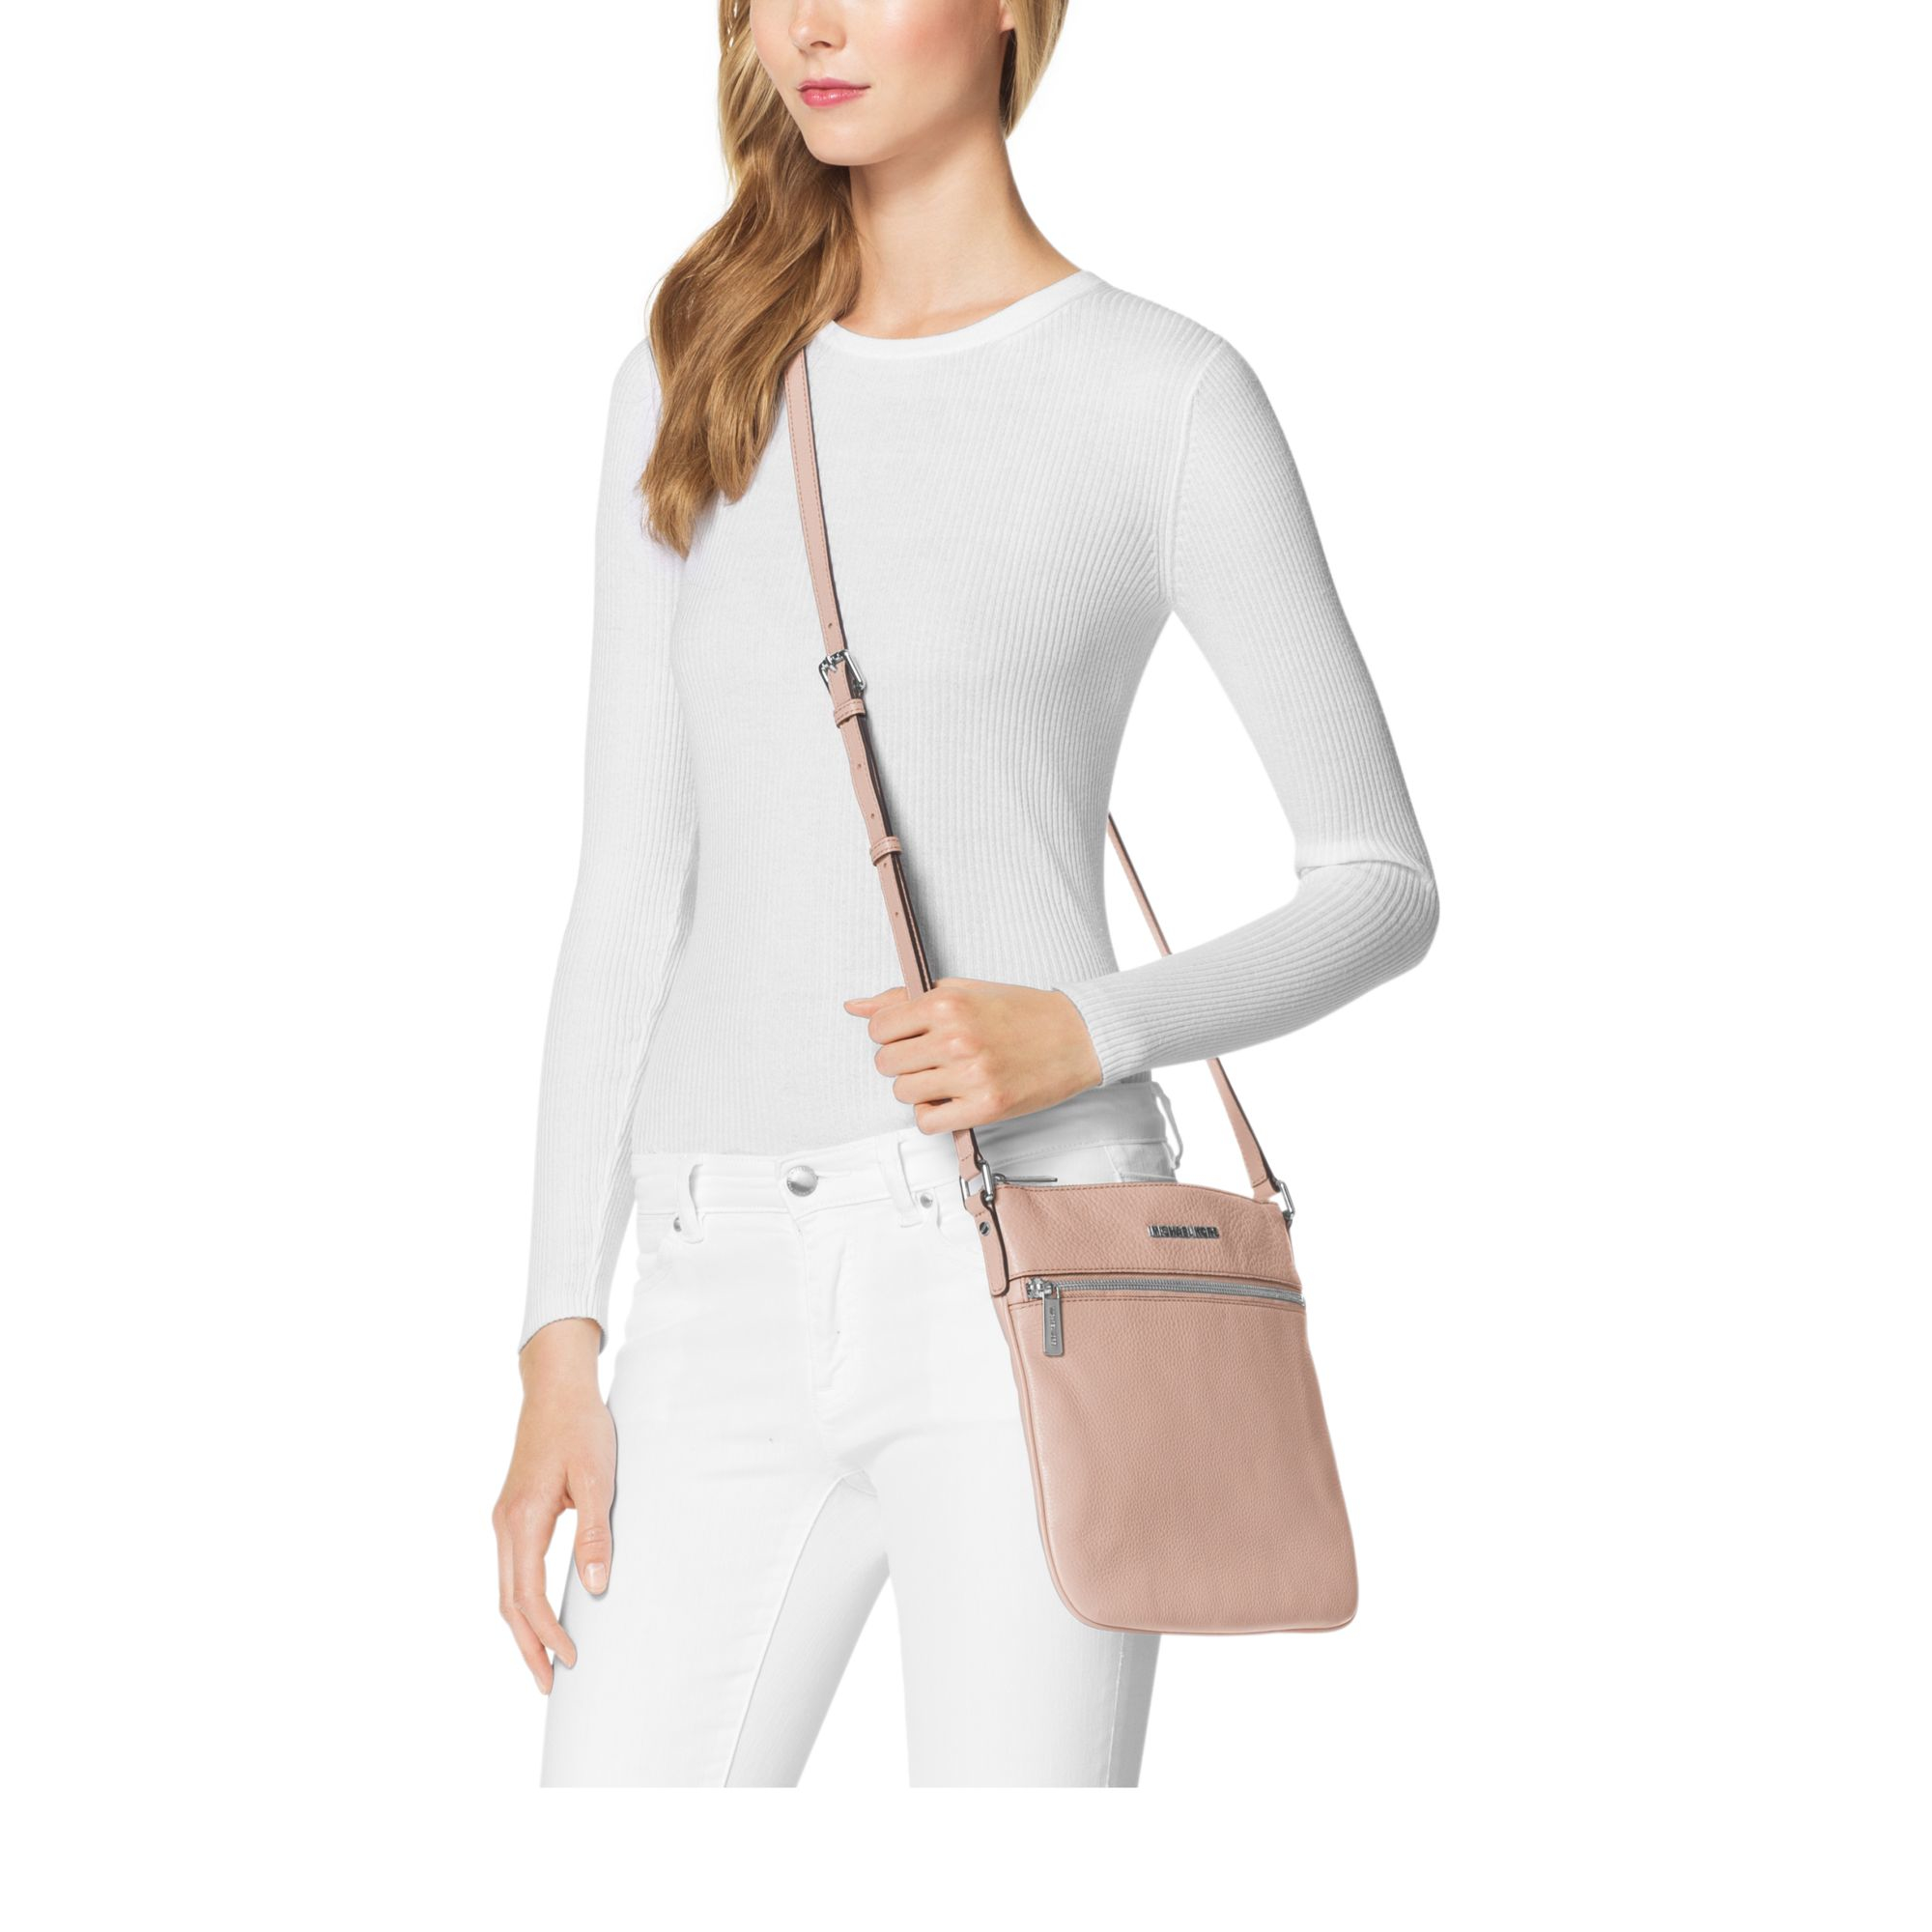 c4ad6d974a969c Michael Kors Bedford Leather Crossbody in Pink - Lyst